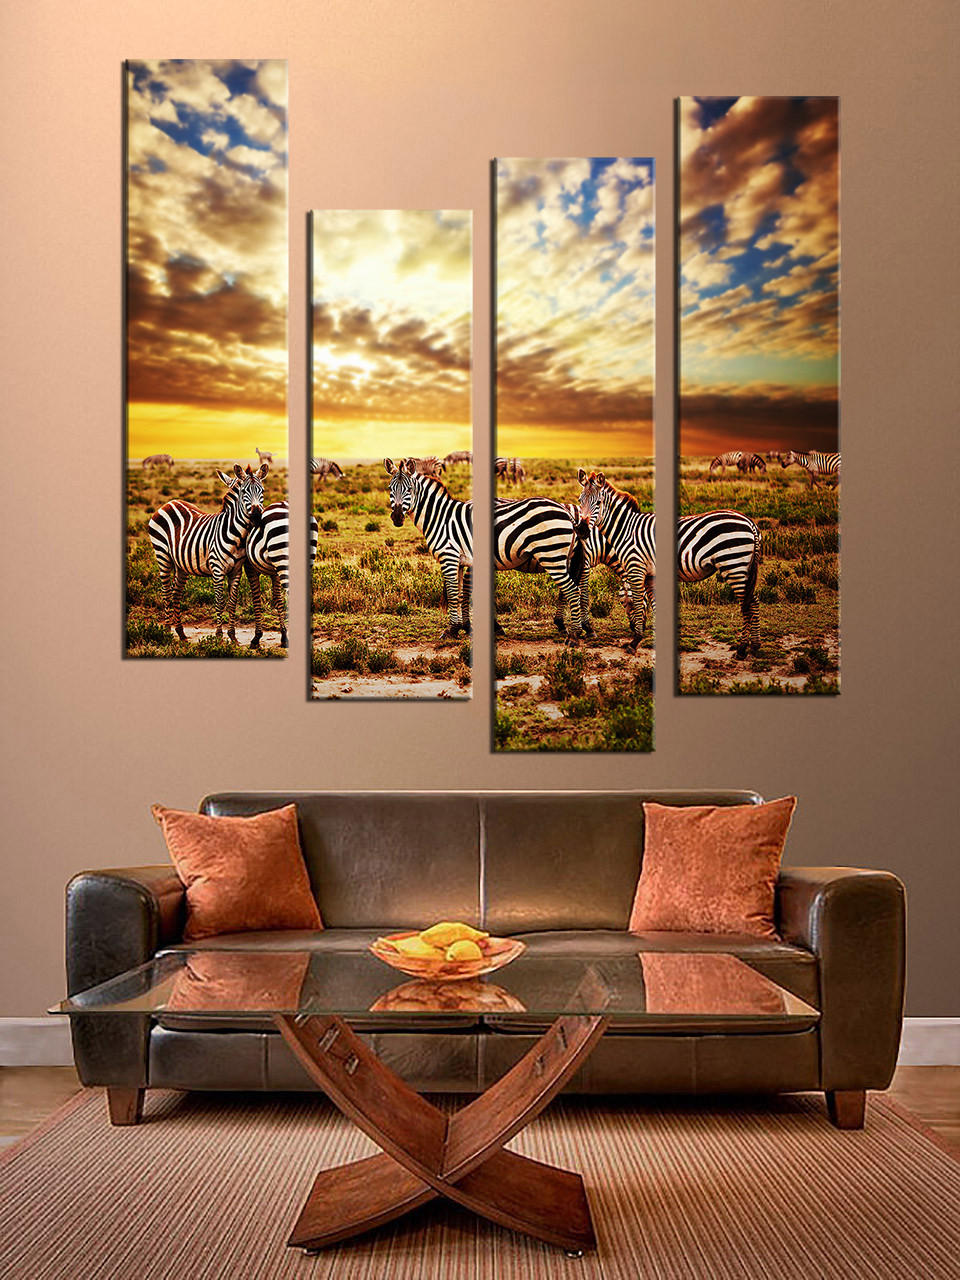 4 Piece Multi Panel Art, Colorful Wall Decor, Zebra Group Canvas ...